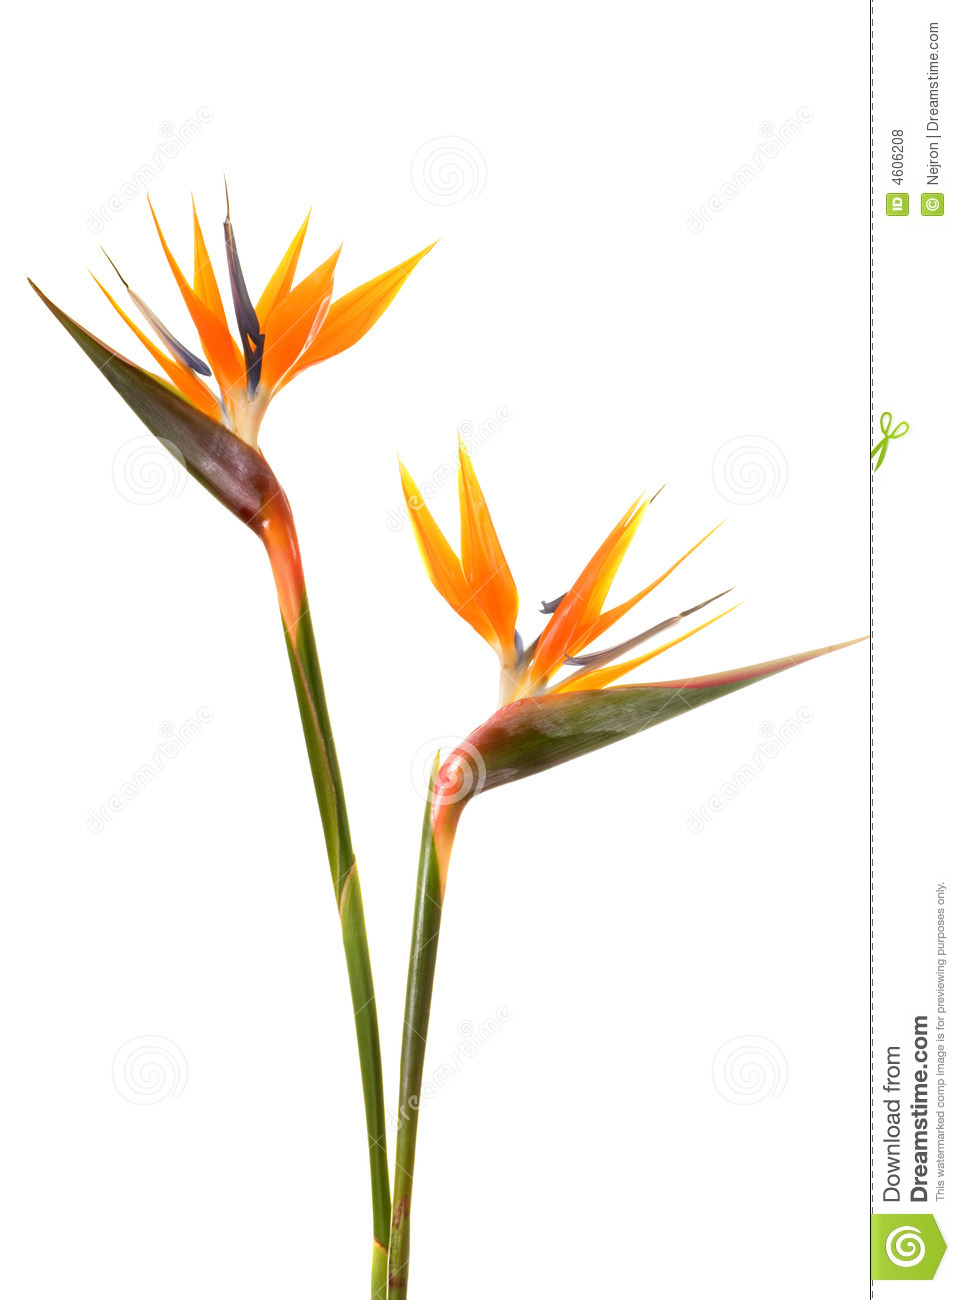 bird of paradise flower stock photo image of bright paradise 4606208. Black Bedroom Furniture Sets. Home Design Ideas